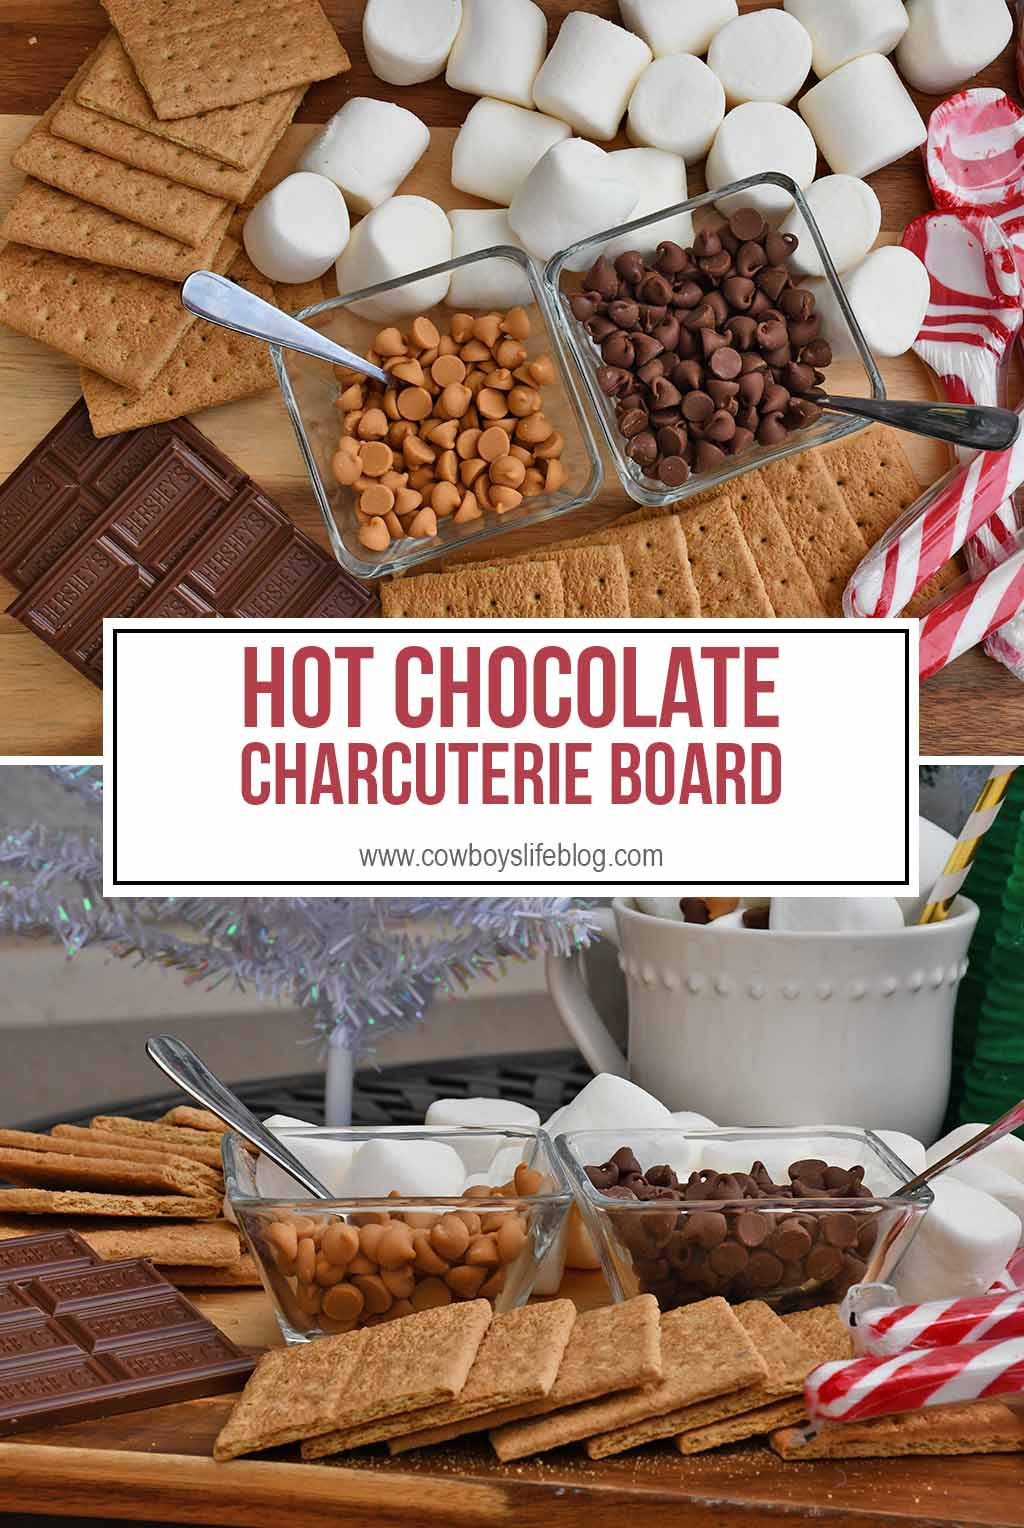 Hot Chocolate Dessert Board